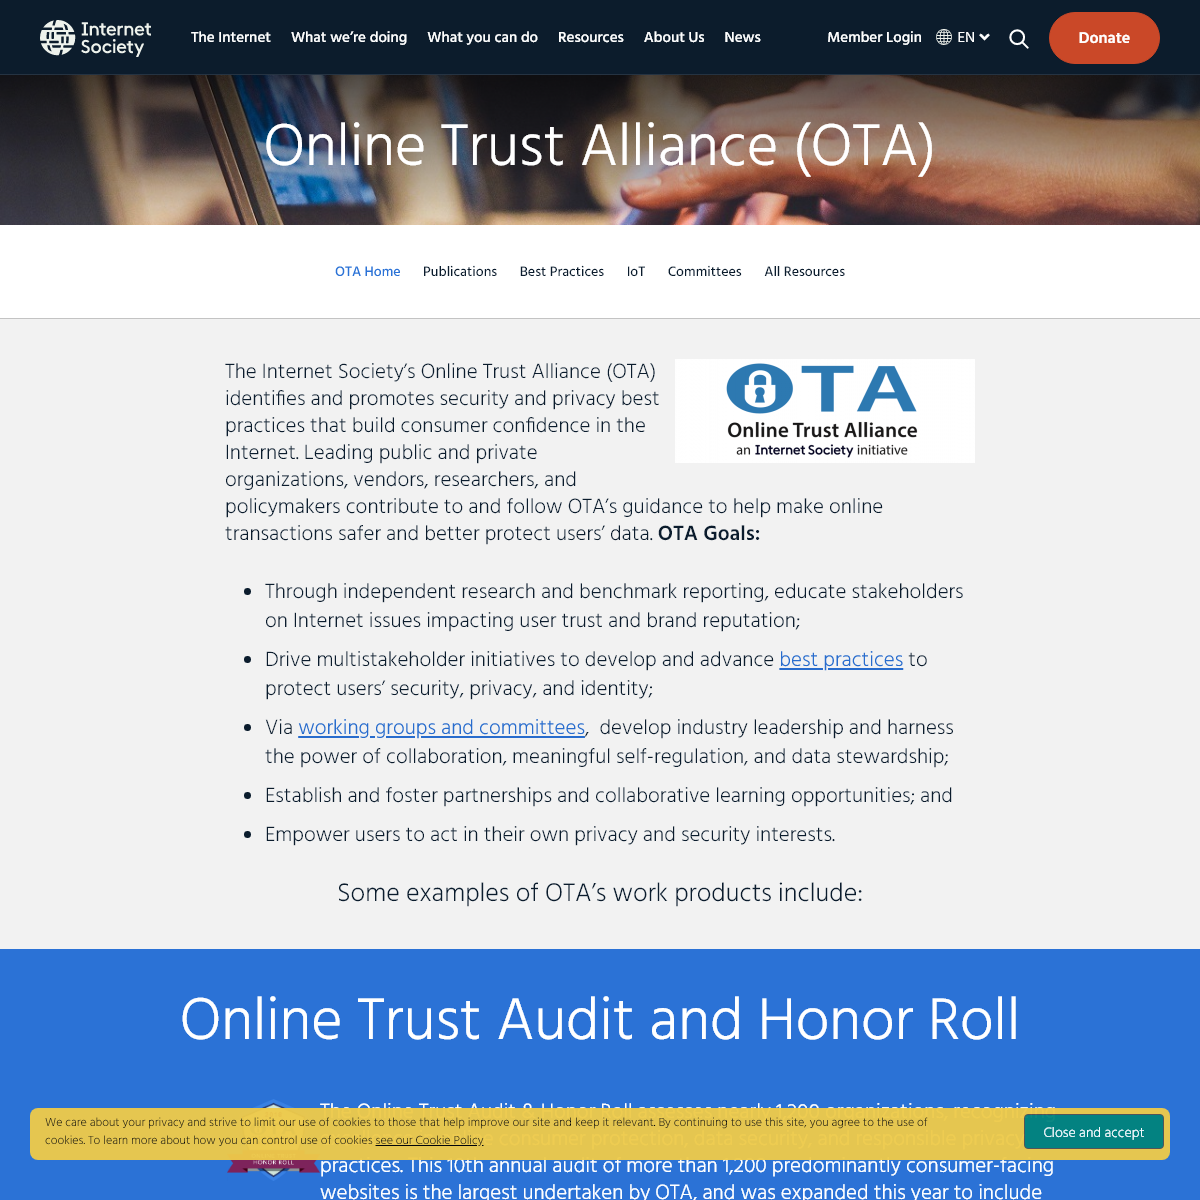 Online Trust Alliance (OTA) - Internet Society